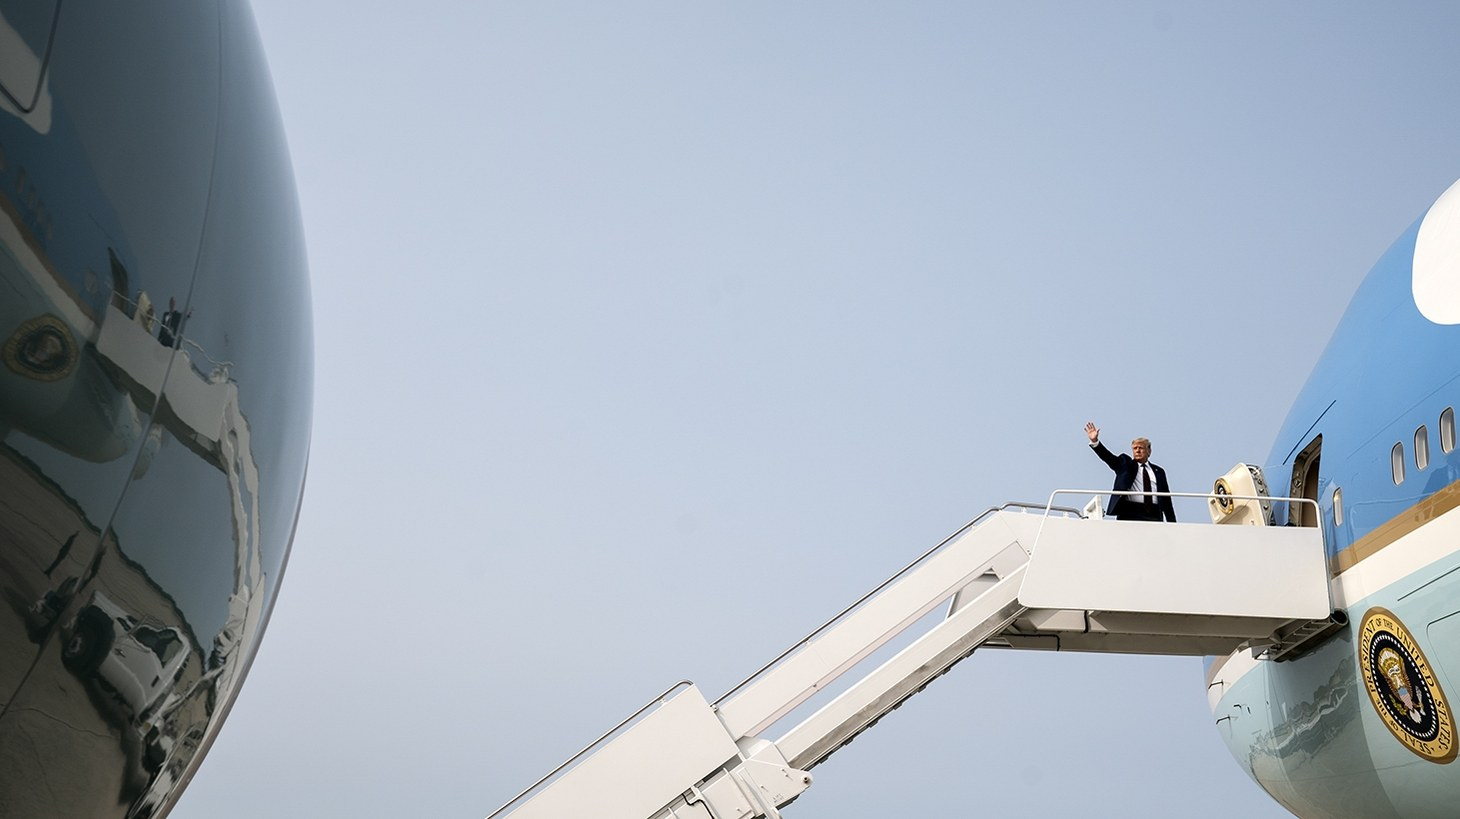 President Donald J. Trump waves as he boards Air Force One at Joint Base Andrews, Md. Tuesday, Sept. 15, for his flight to Philadelphia International Airport in Philadelphia.